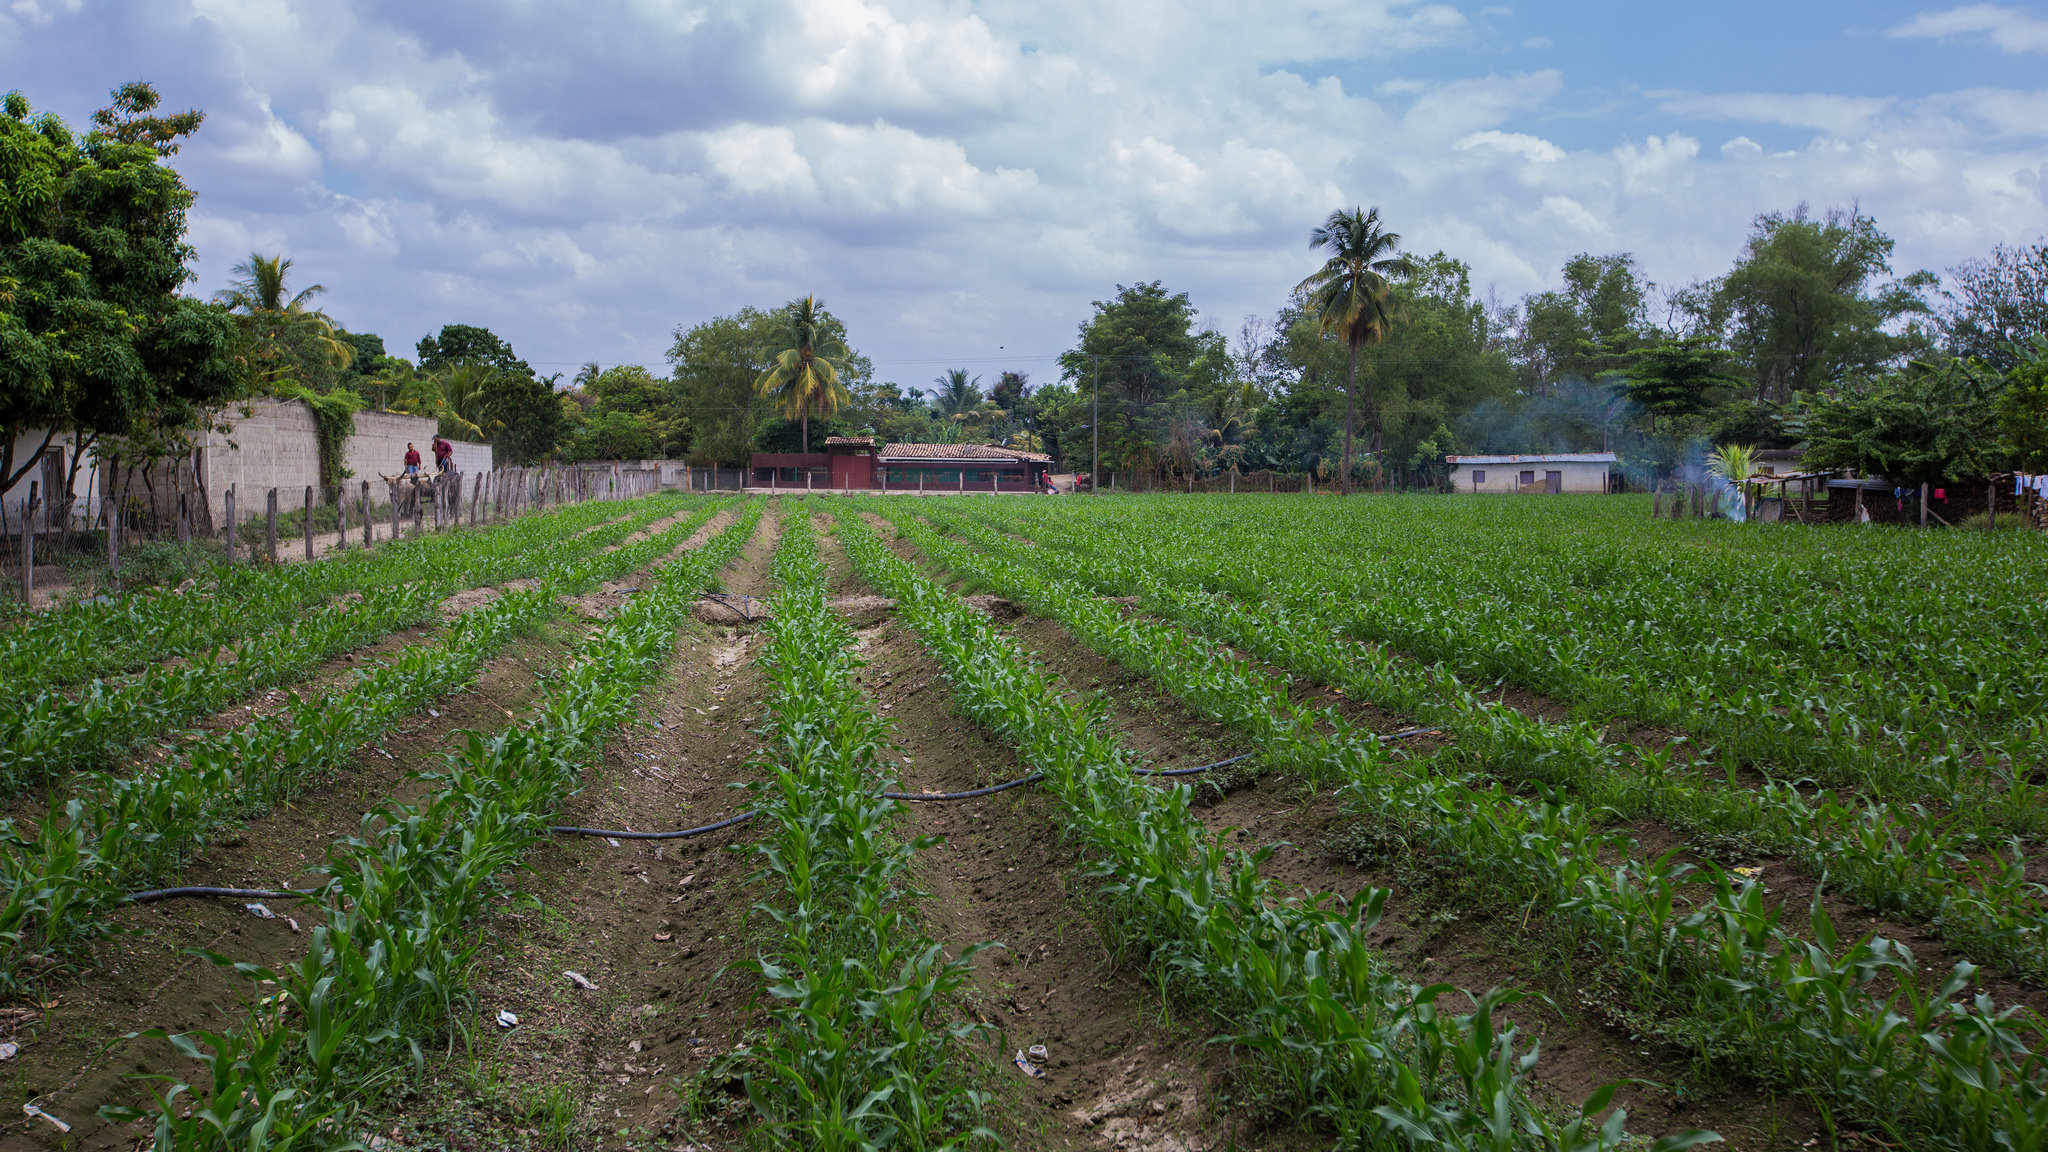 A field of rows of green foot-high corn stalks stretches in front of the camera, with deep furrows between the rows. The field is about an acre and beyond the fence are houses with terracotta and corrugated metal roofs. In the distance on the left are two figures on a cart pulled by a mule. Smoke rises from the yard of one of the houses and drifts across the field.